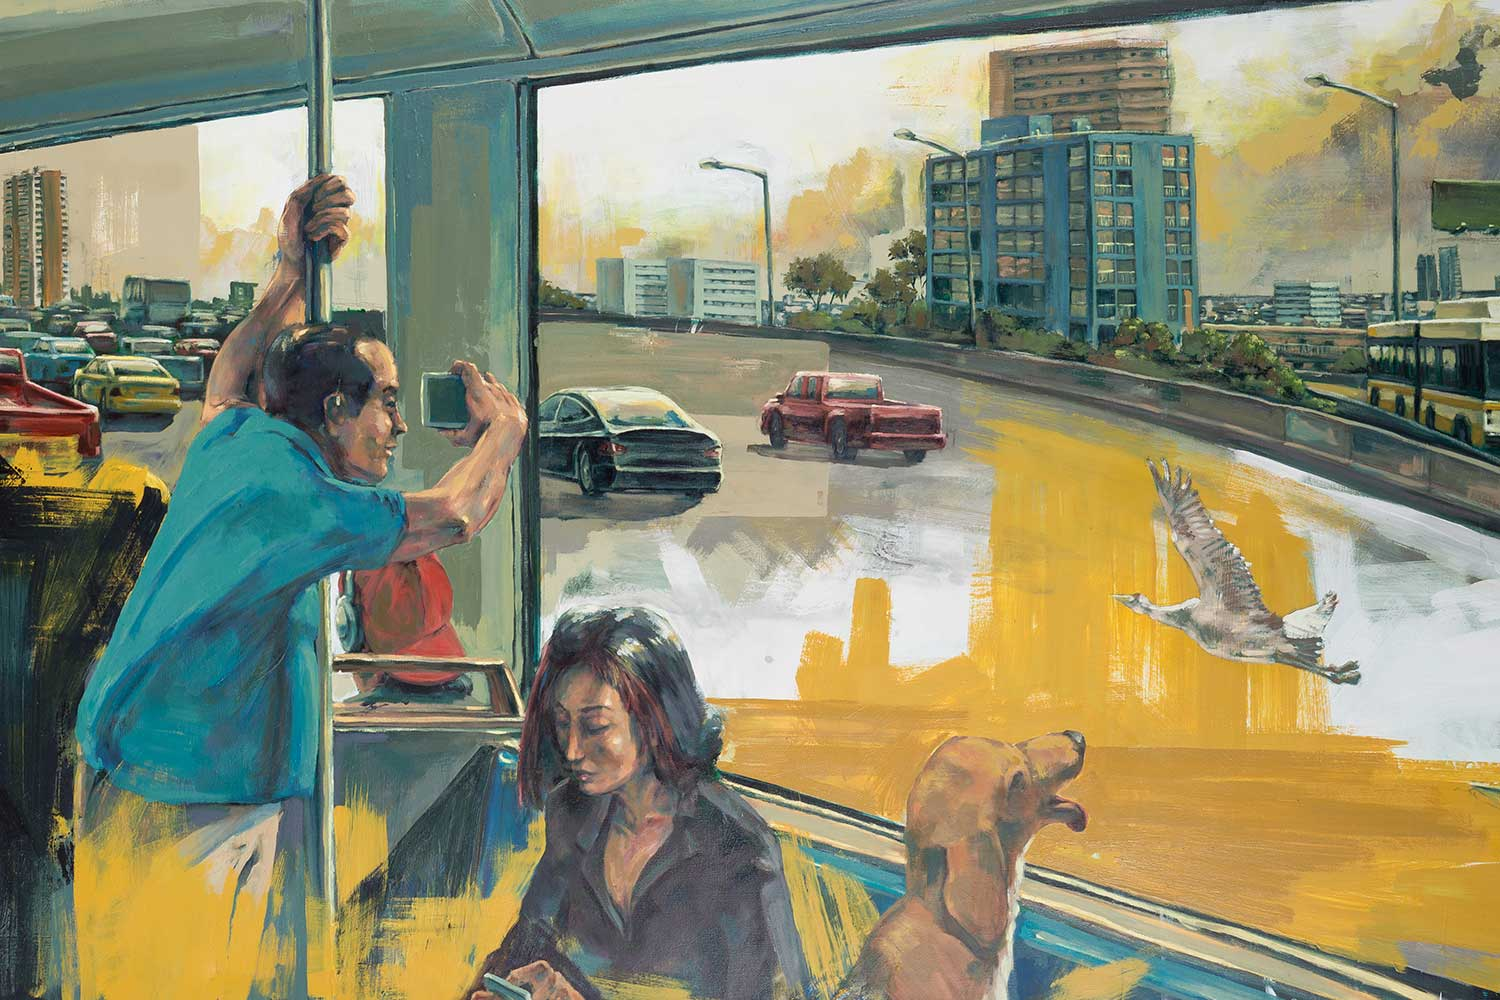 Oil painting of people in bus looking out at a cityscape